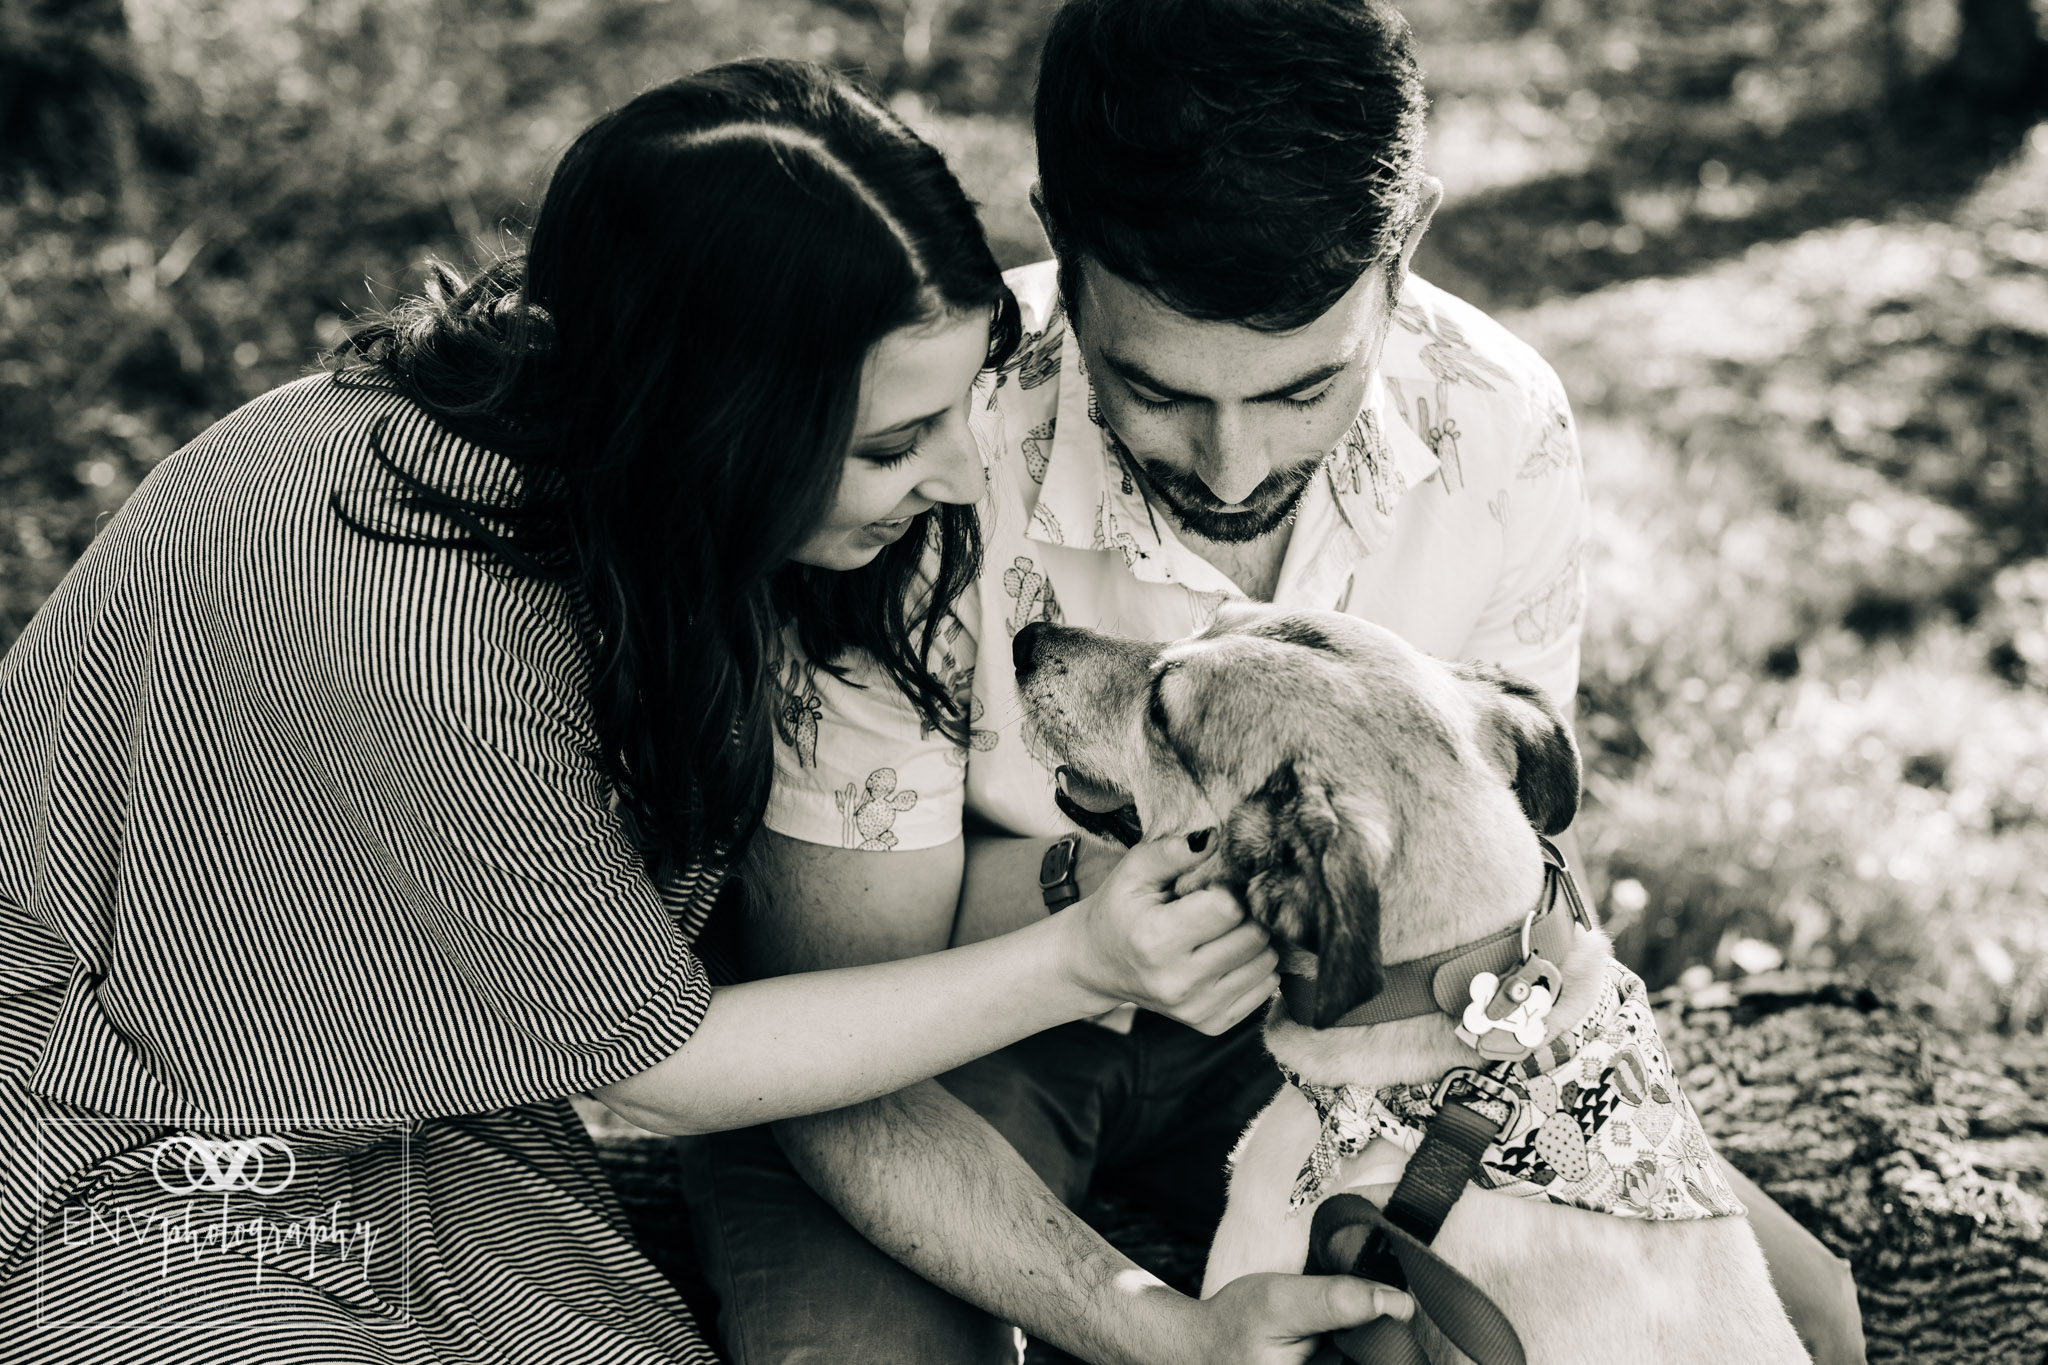 mount vernon columbus mansfield ohio engagement family photographer (5).jpg